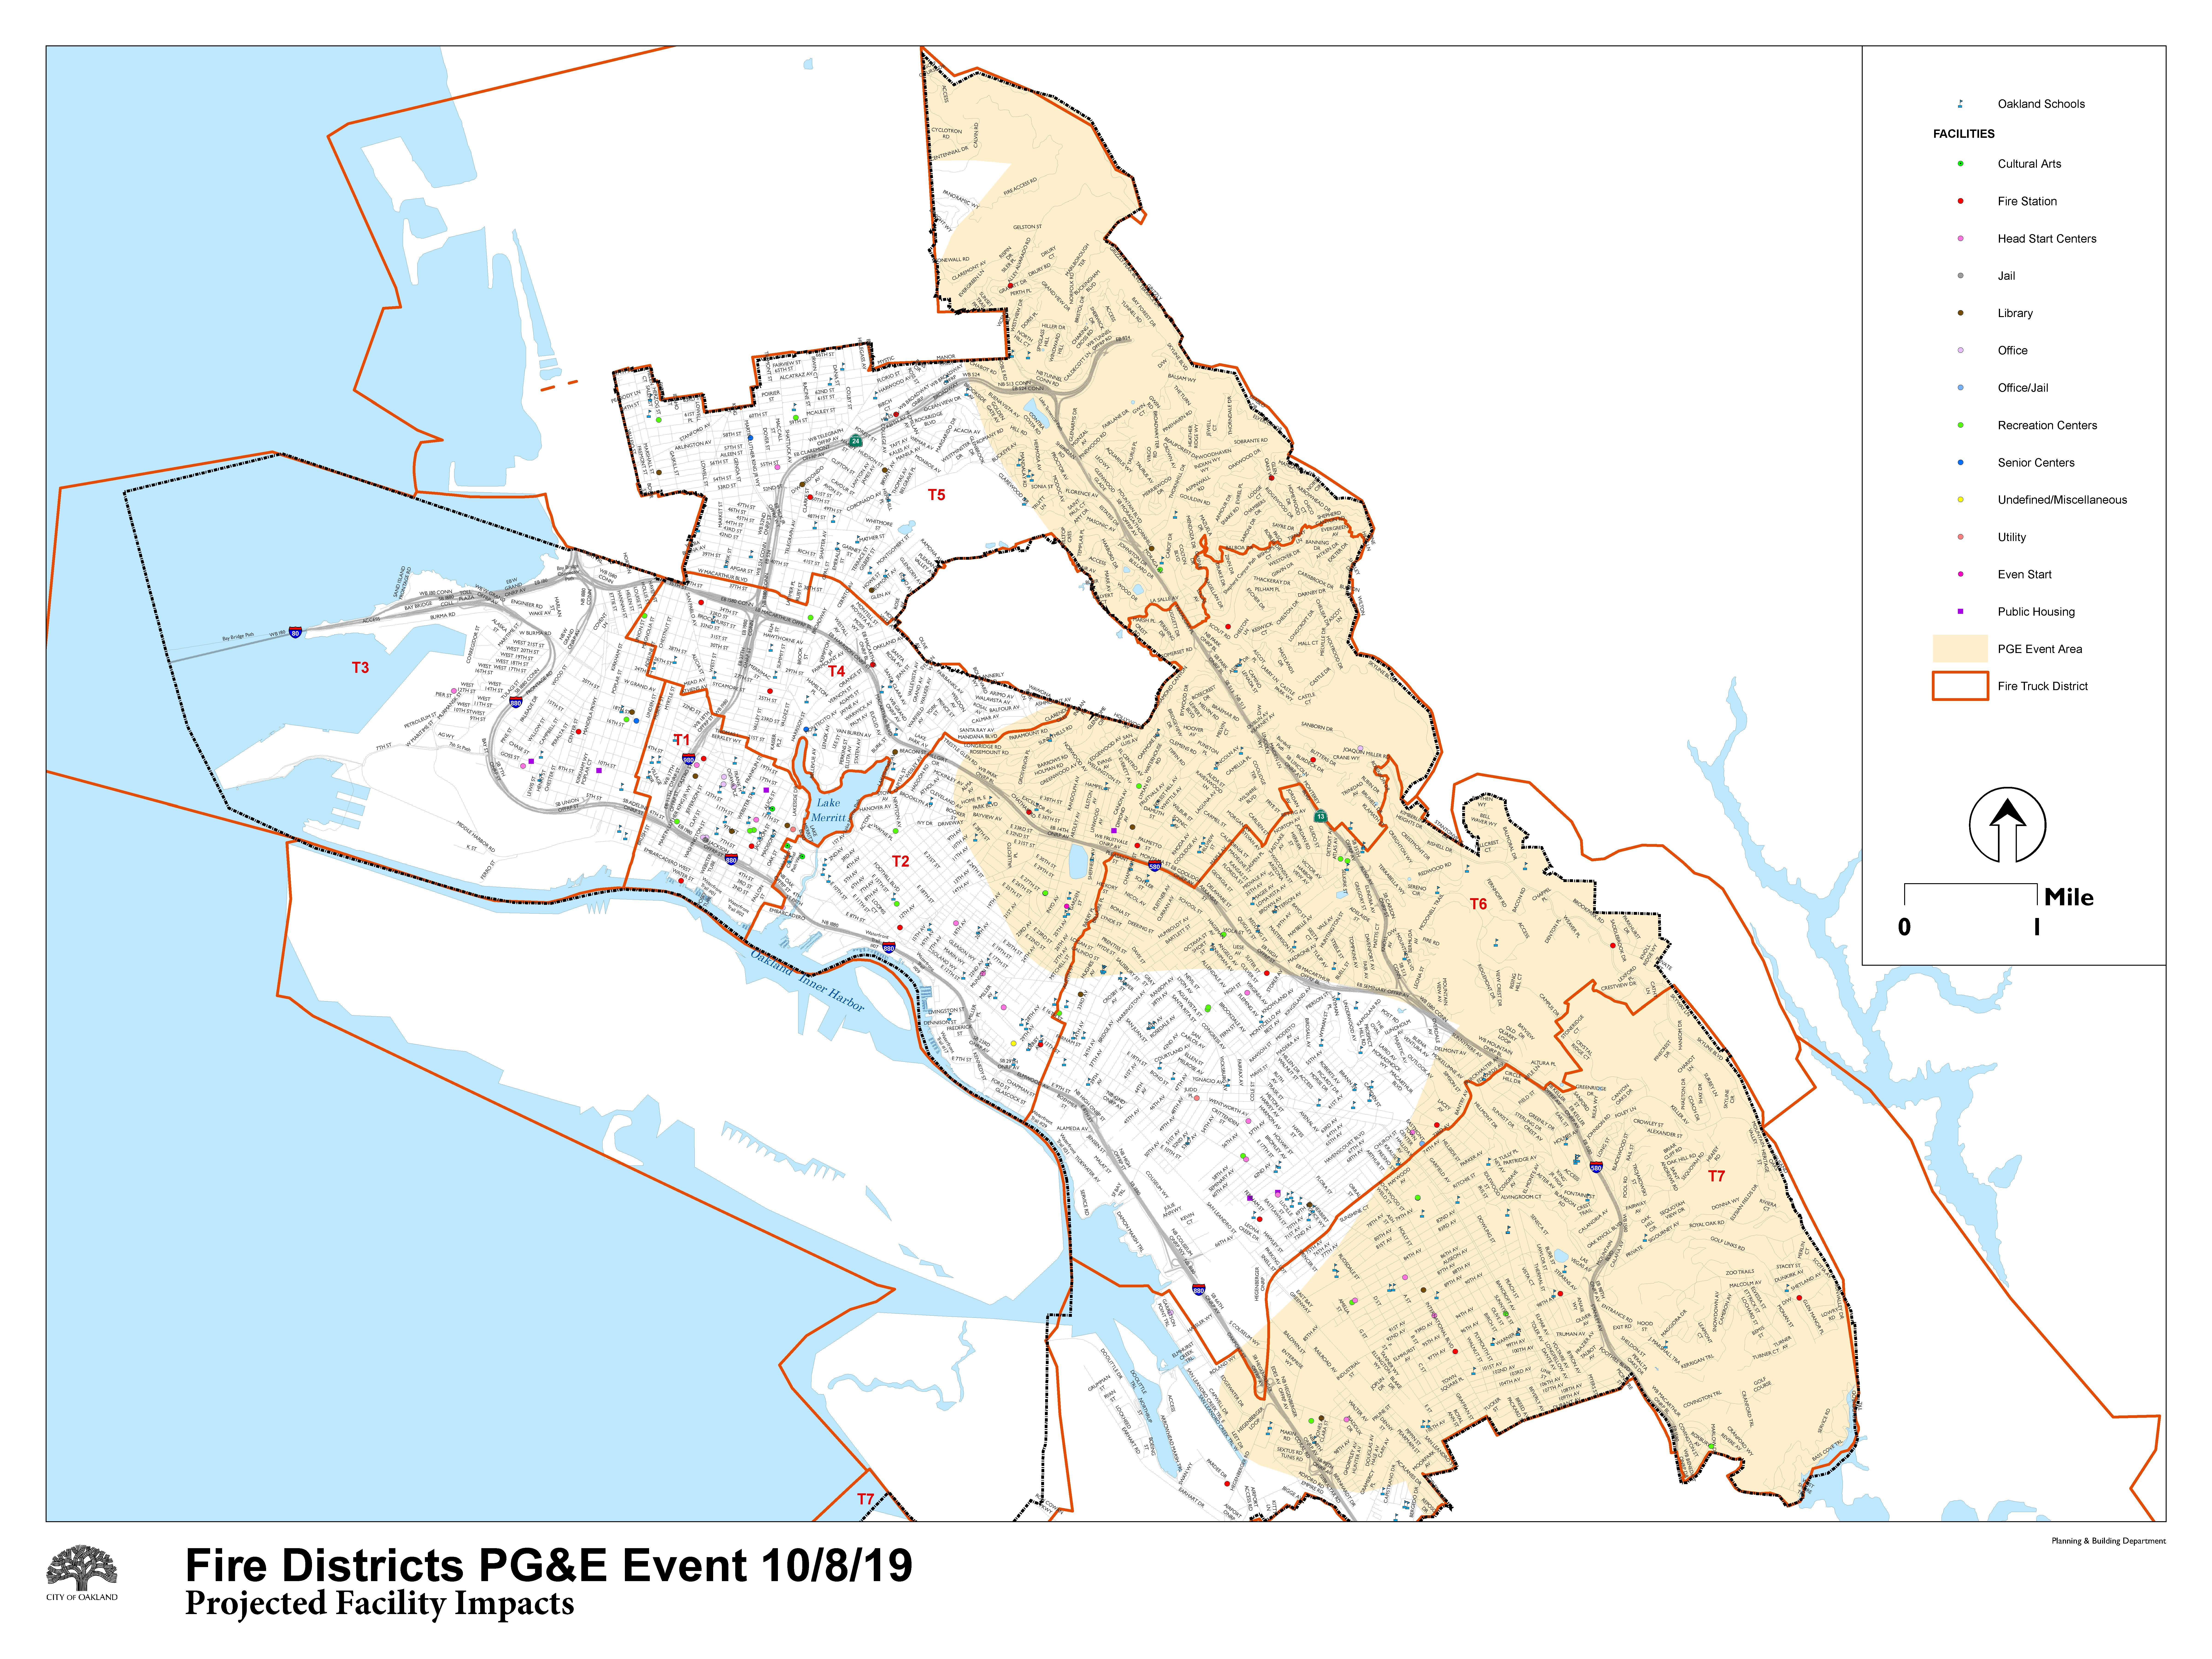 City of Oakland | Oakland Fire Safety & PG&E Power Shutoff ... Map Oakland on saginaw valley map, san francisco area map, woodlawn park map, sacramento map, jack london square map, san diego map, outer sunset map, st. louis map, concord map, summit view map, half moon bay map, shady lake map, alameda county map, fryeburg map, san jose map, bay bridge map, eureka map, seattle map, bay area map, florida map,